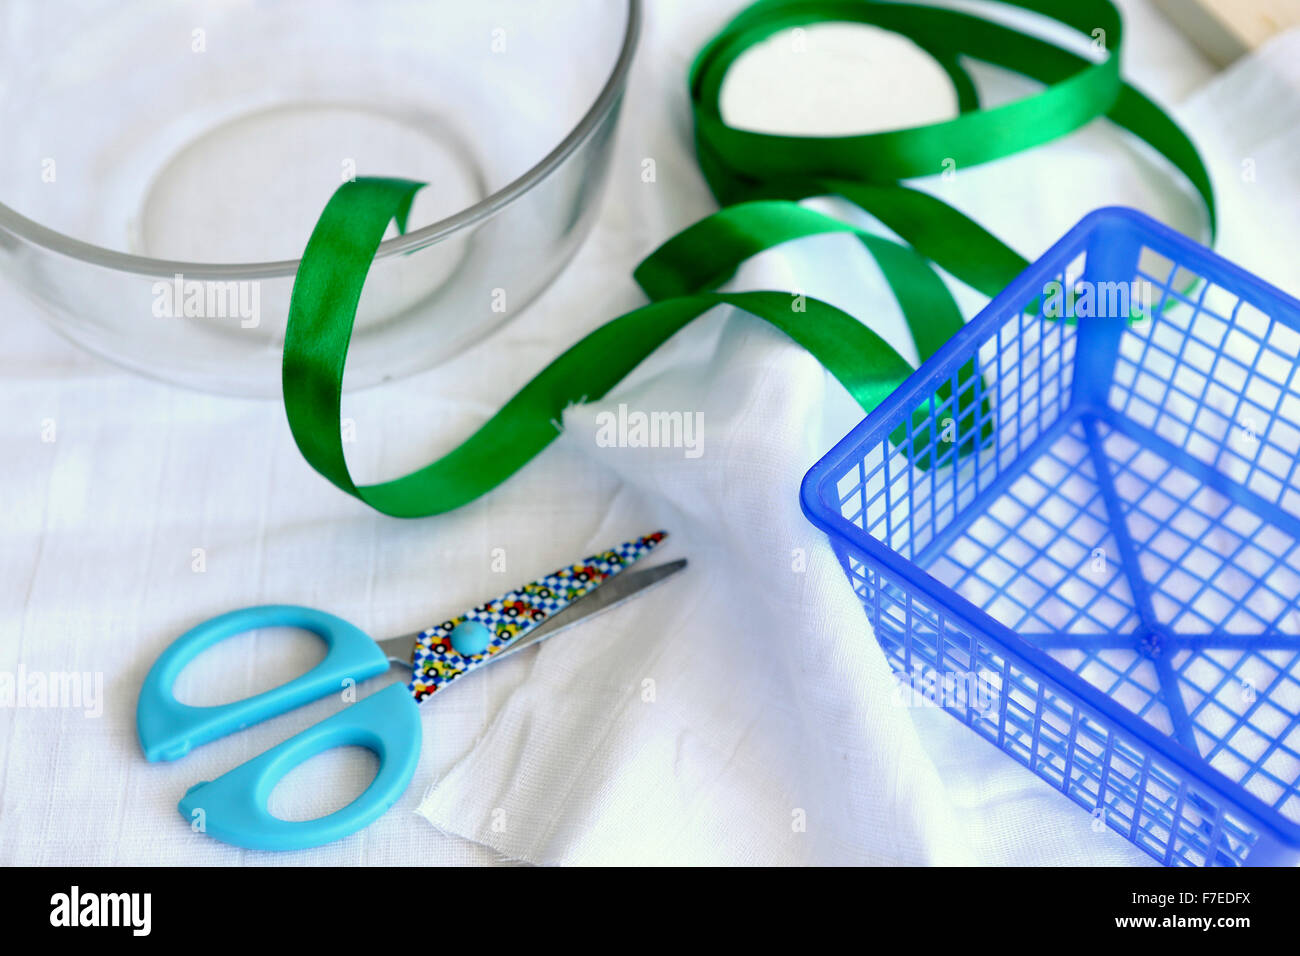 Handcraft concept with scissors basket and ribbon This image has a restriction for licensing in Israel - Stock Image